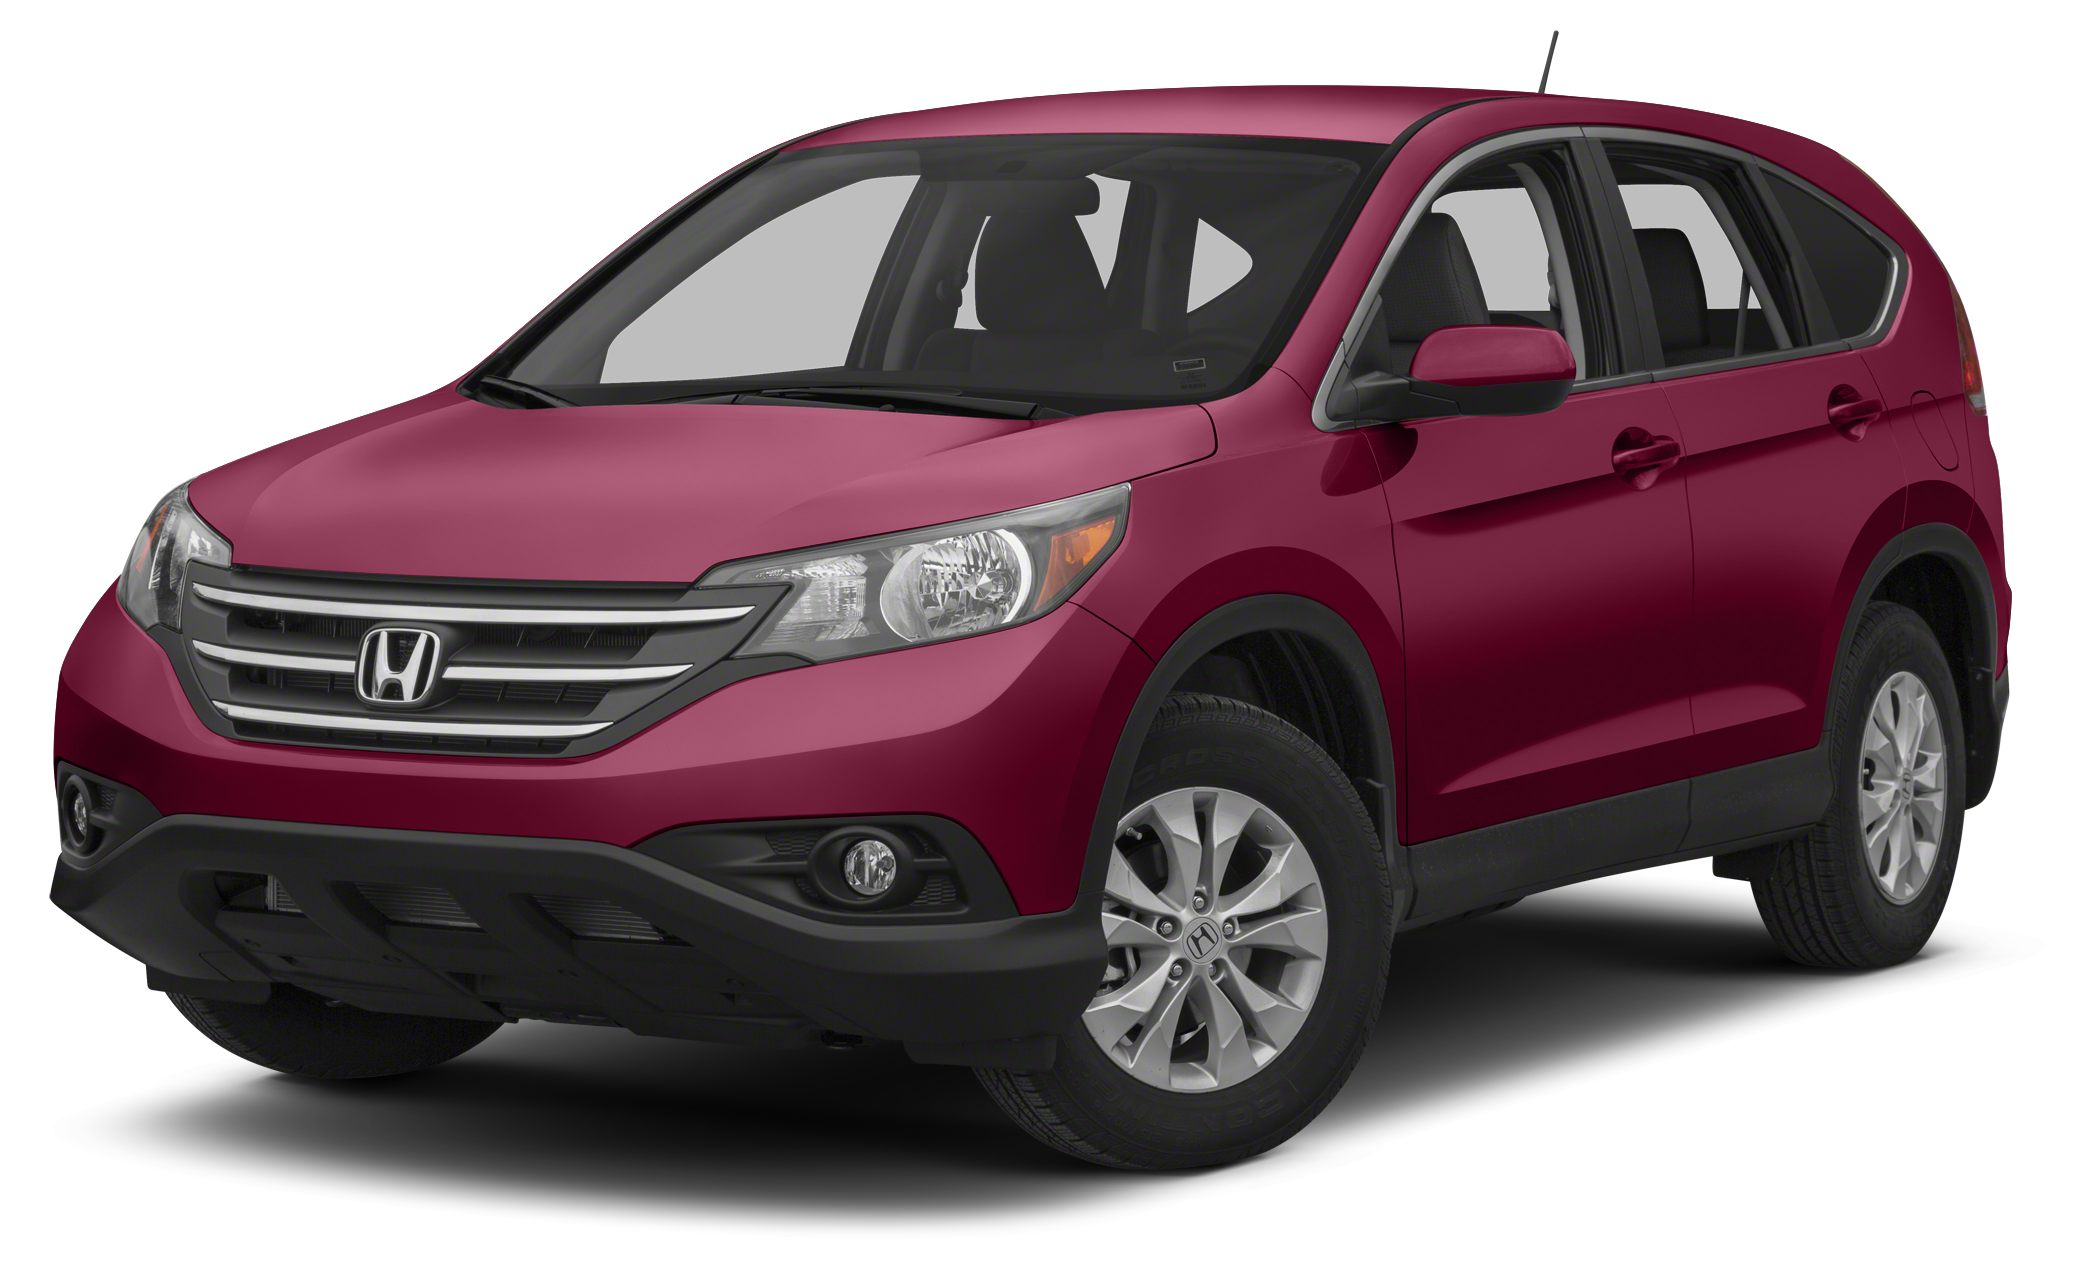 2013 Honda CR-V  Miles 44821Color Red Stock GW120344A VIN 5J6RM4H78DL039437